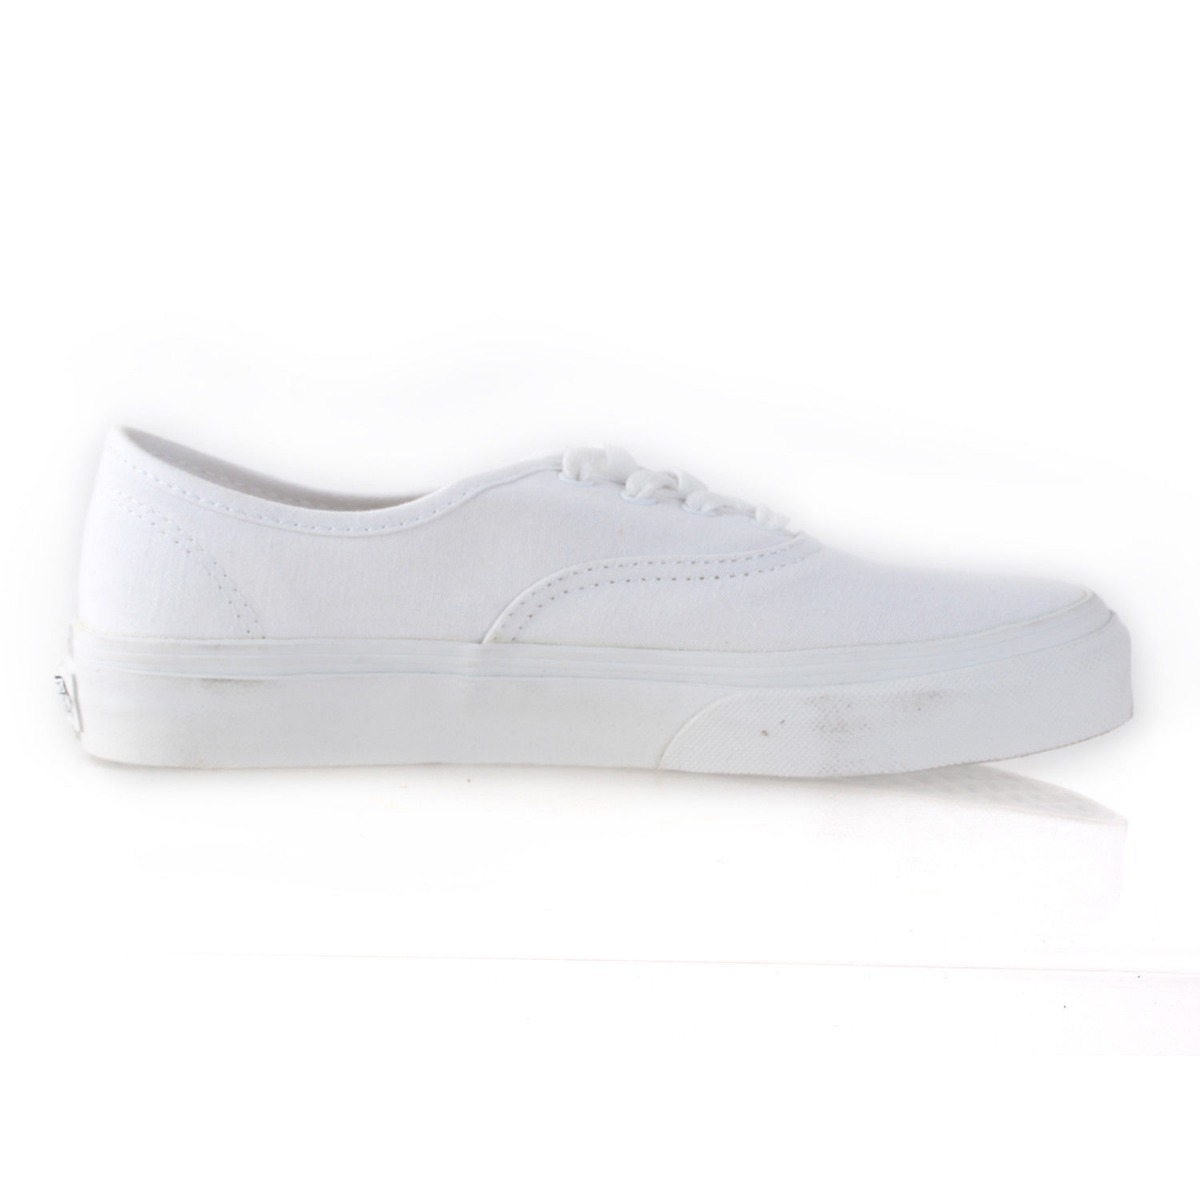 Tenis Vans Authentic Blanco Monocromo 17 Zx Originales